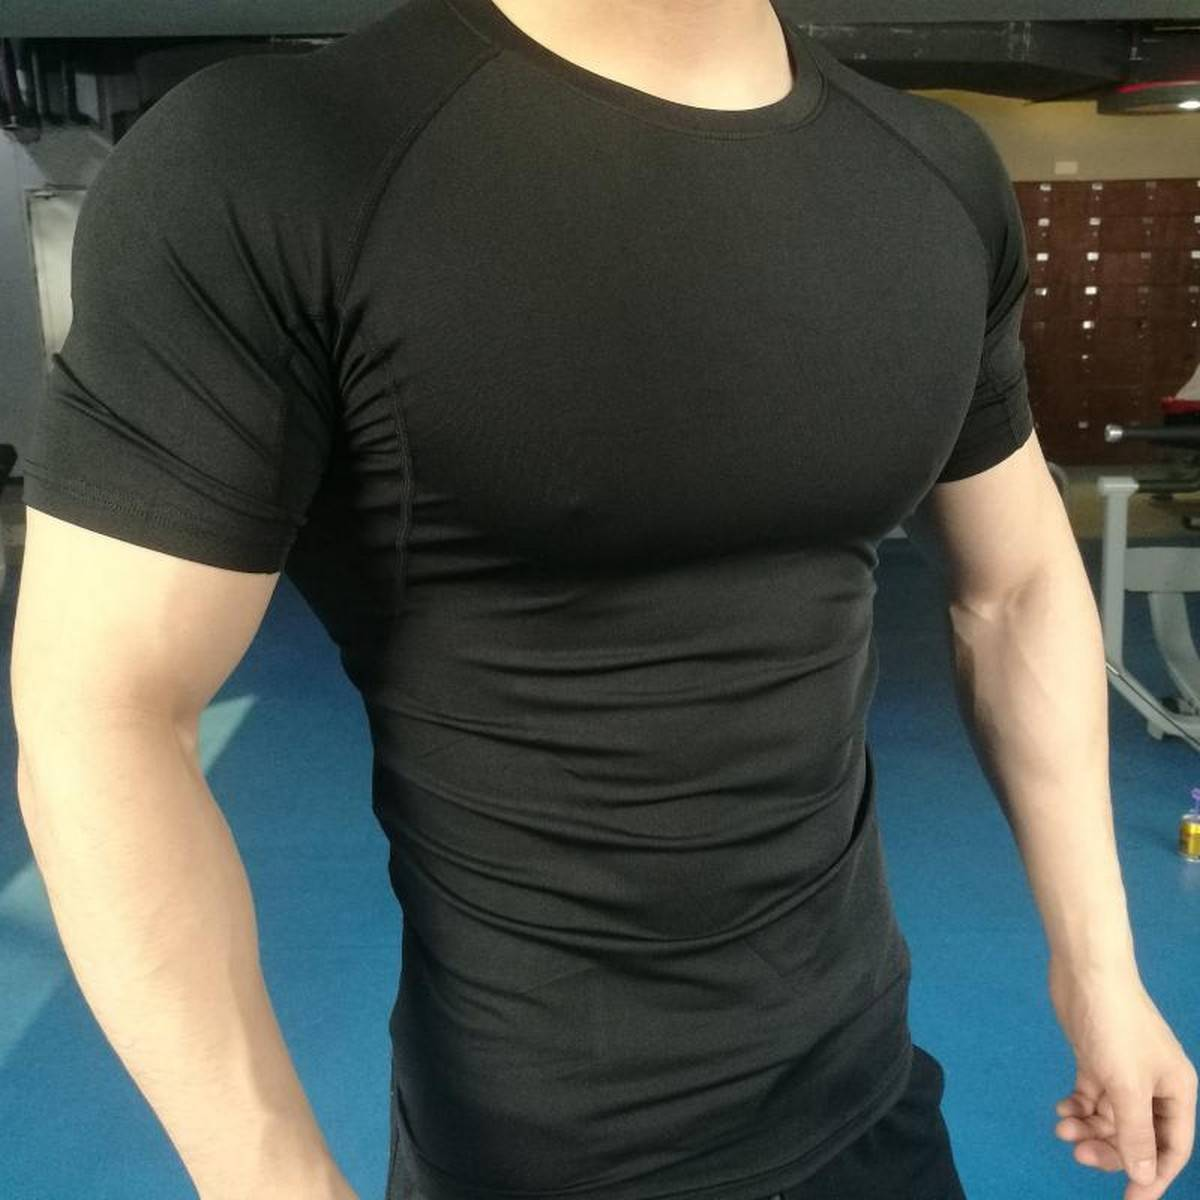 T-Shirt Stretchable Imported Quality Gym Workout Shirt for Man Casual T-Shirts Boys & Girls